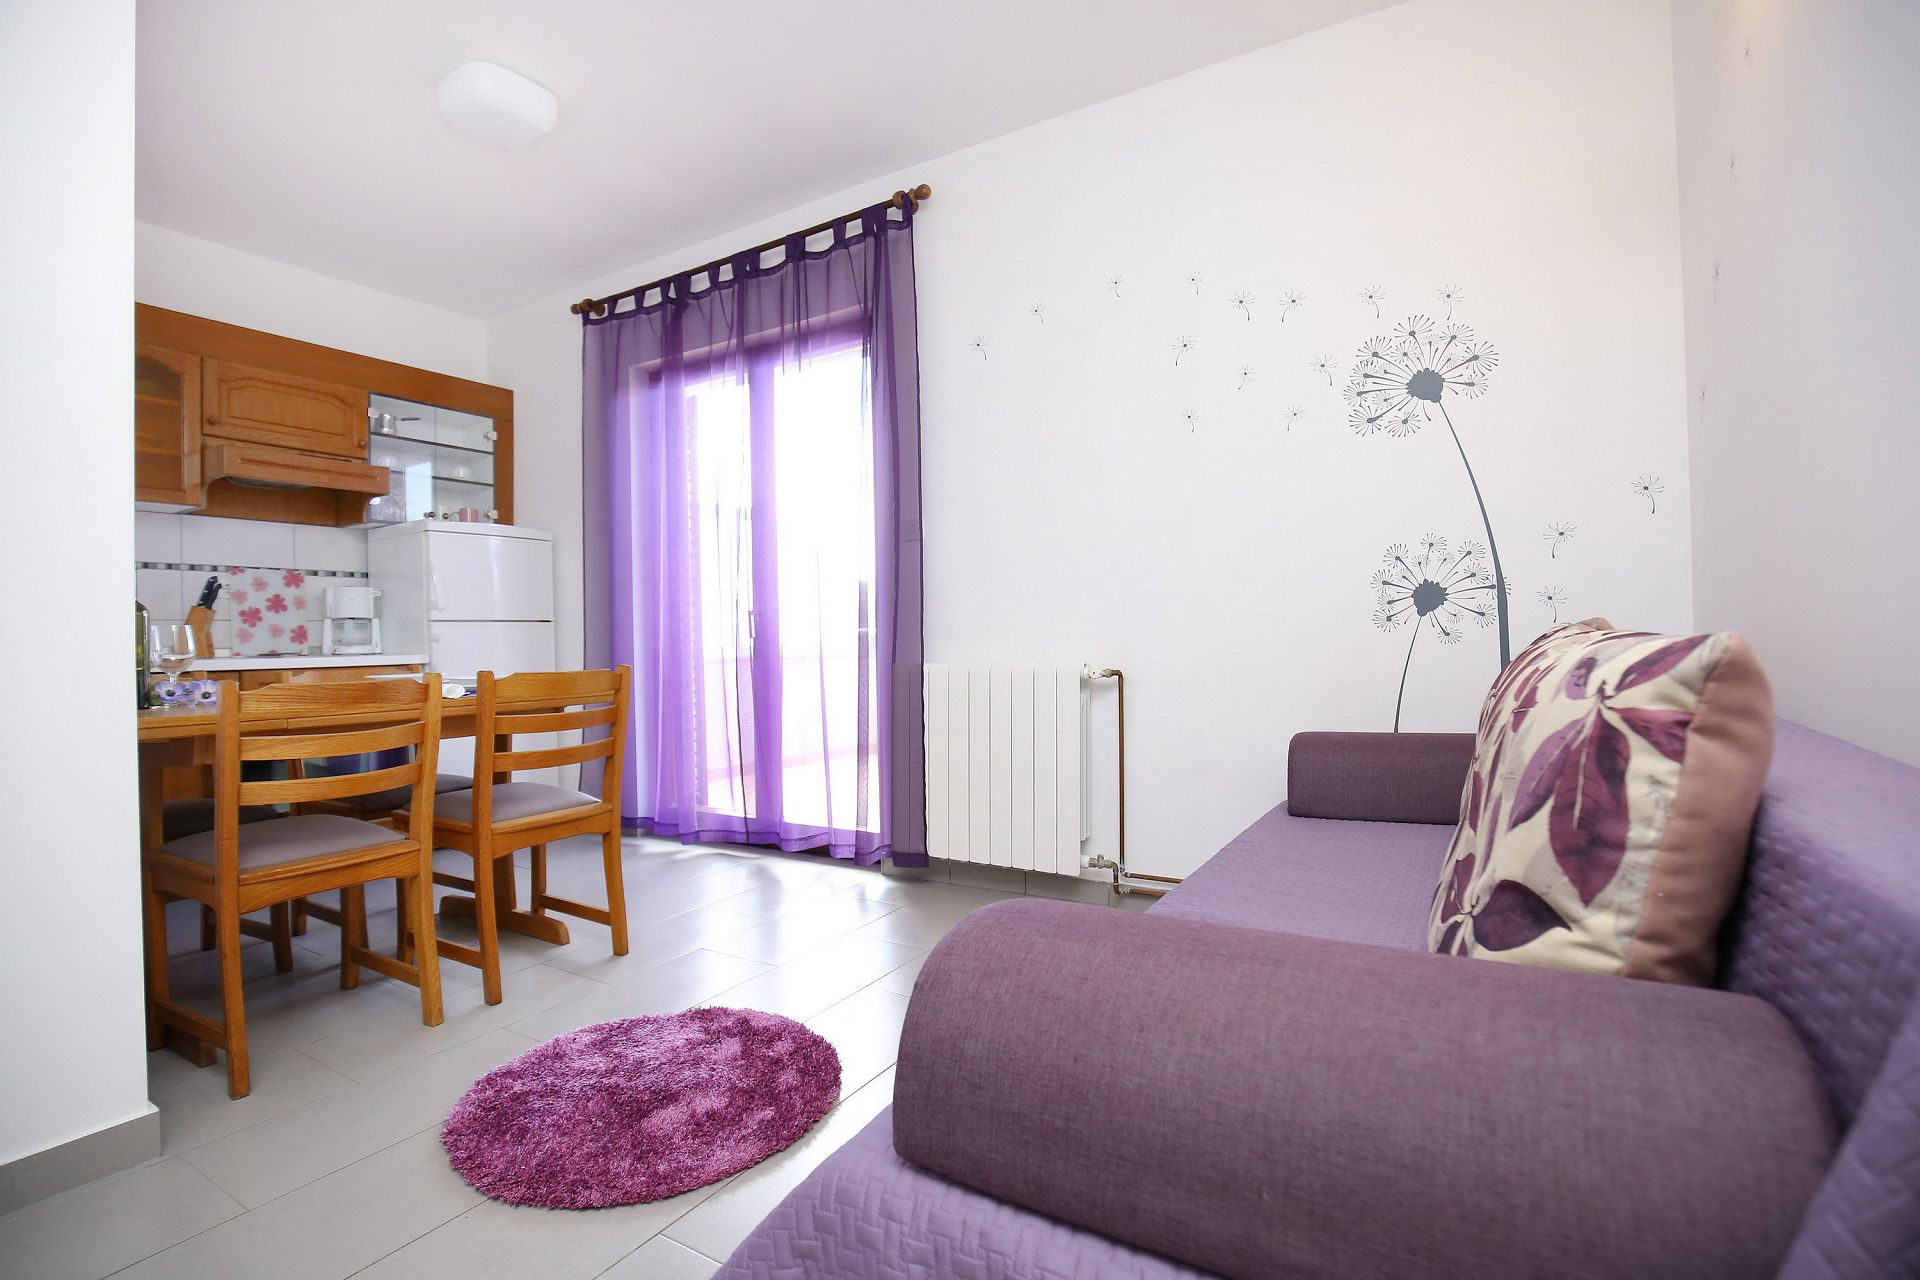 00418ZATZ - Zaton (Zadar) - Apartments Croatia - A2(2+2): living room